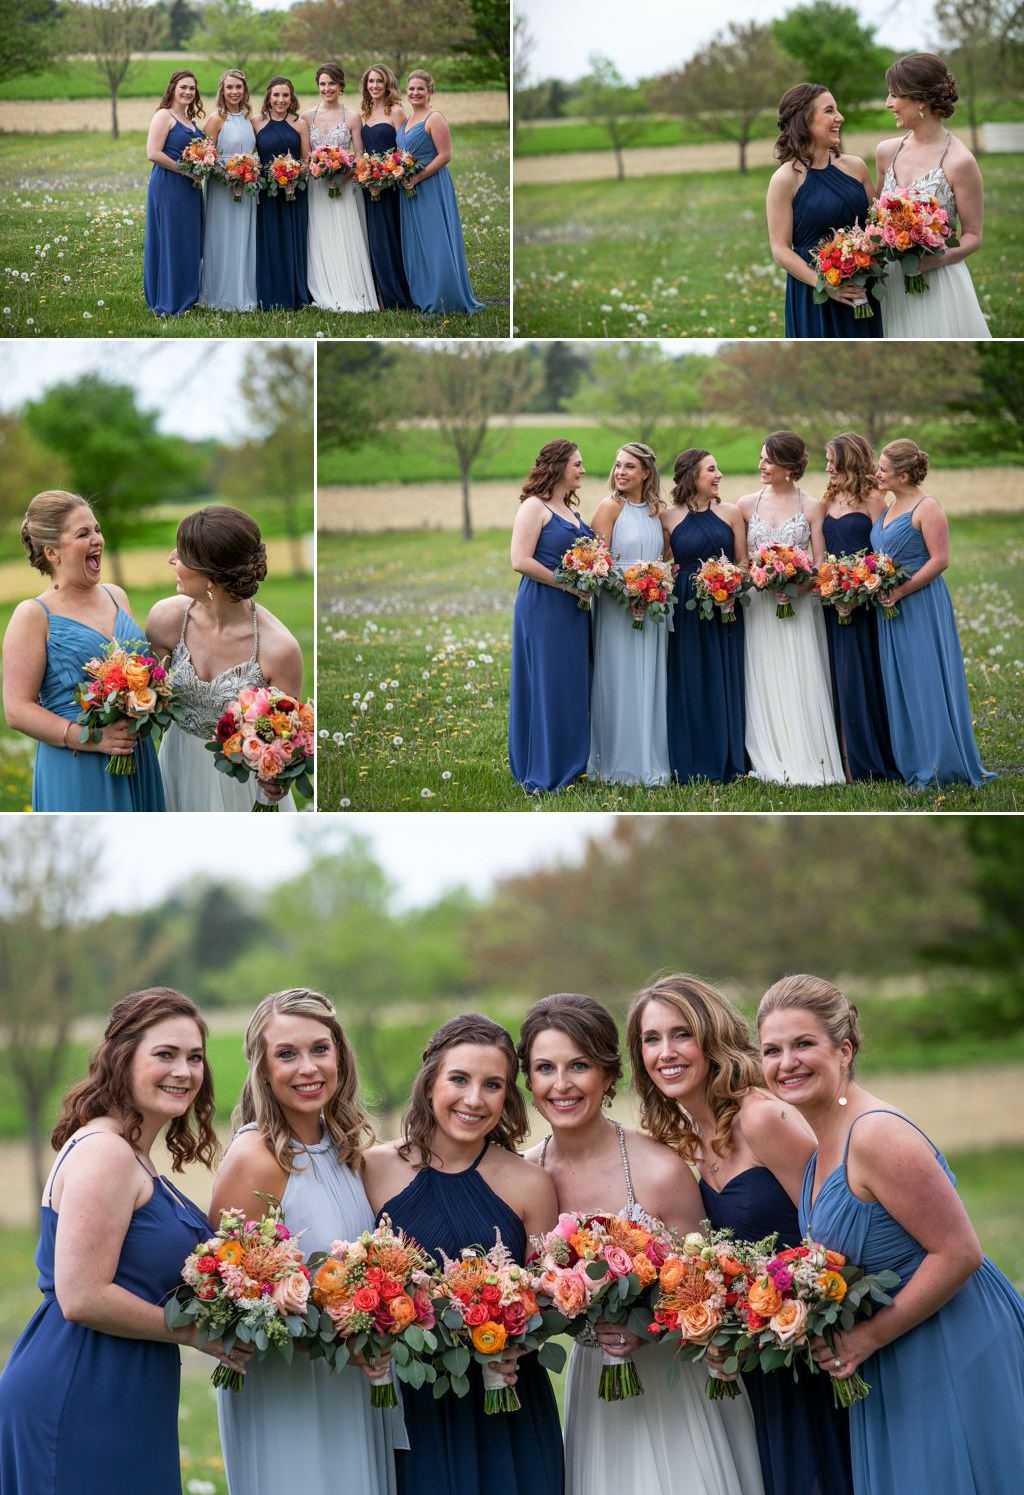 A bride and bridesmaids posing for photos in a field